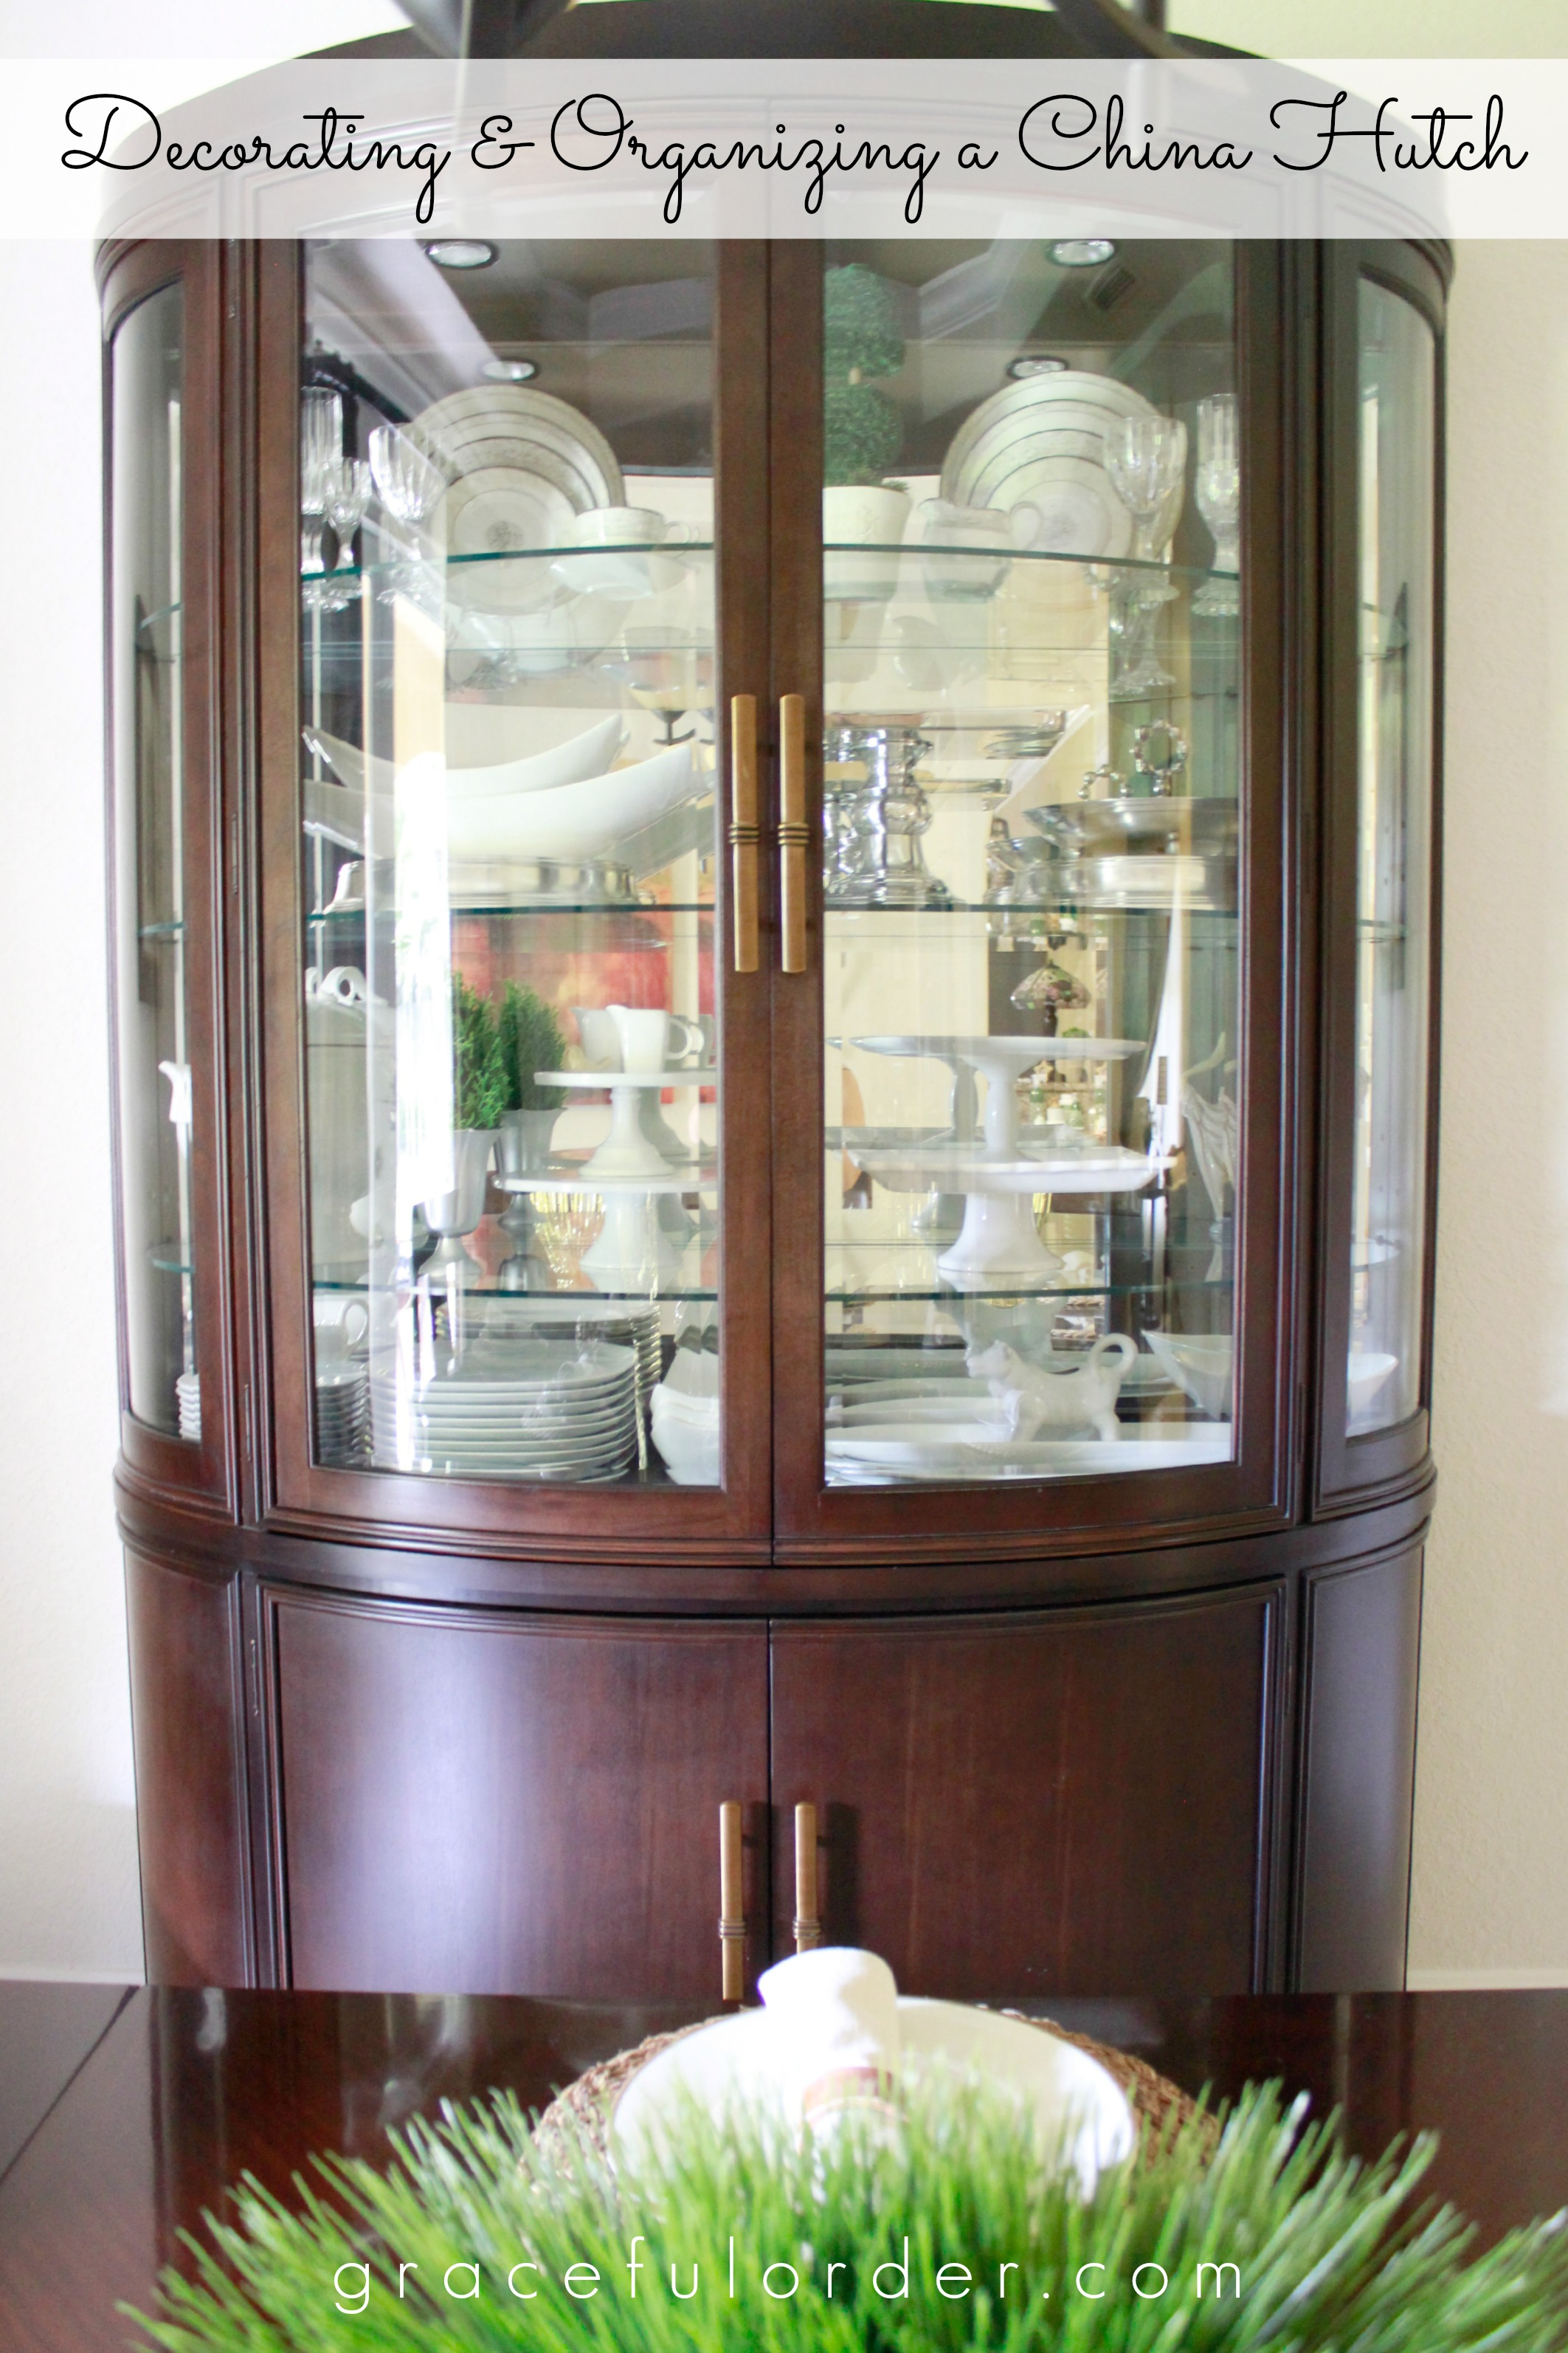 Decorating a China Cabinet / Hutch - Graceful Order